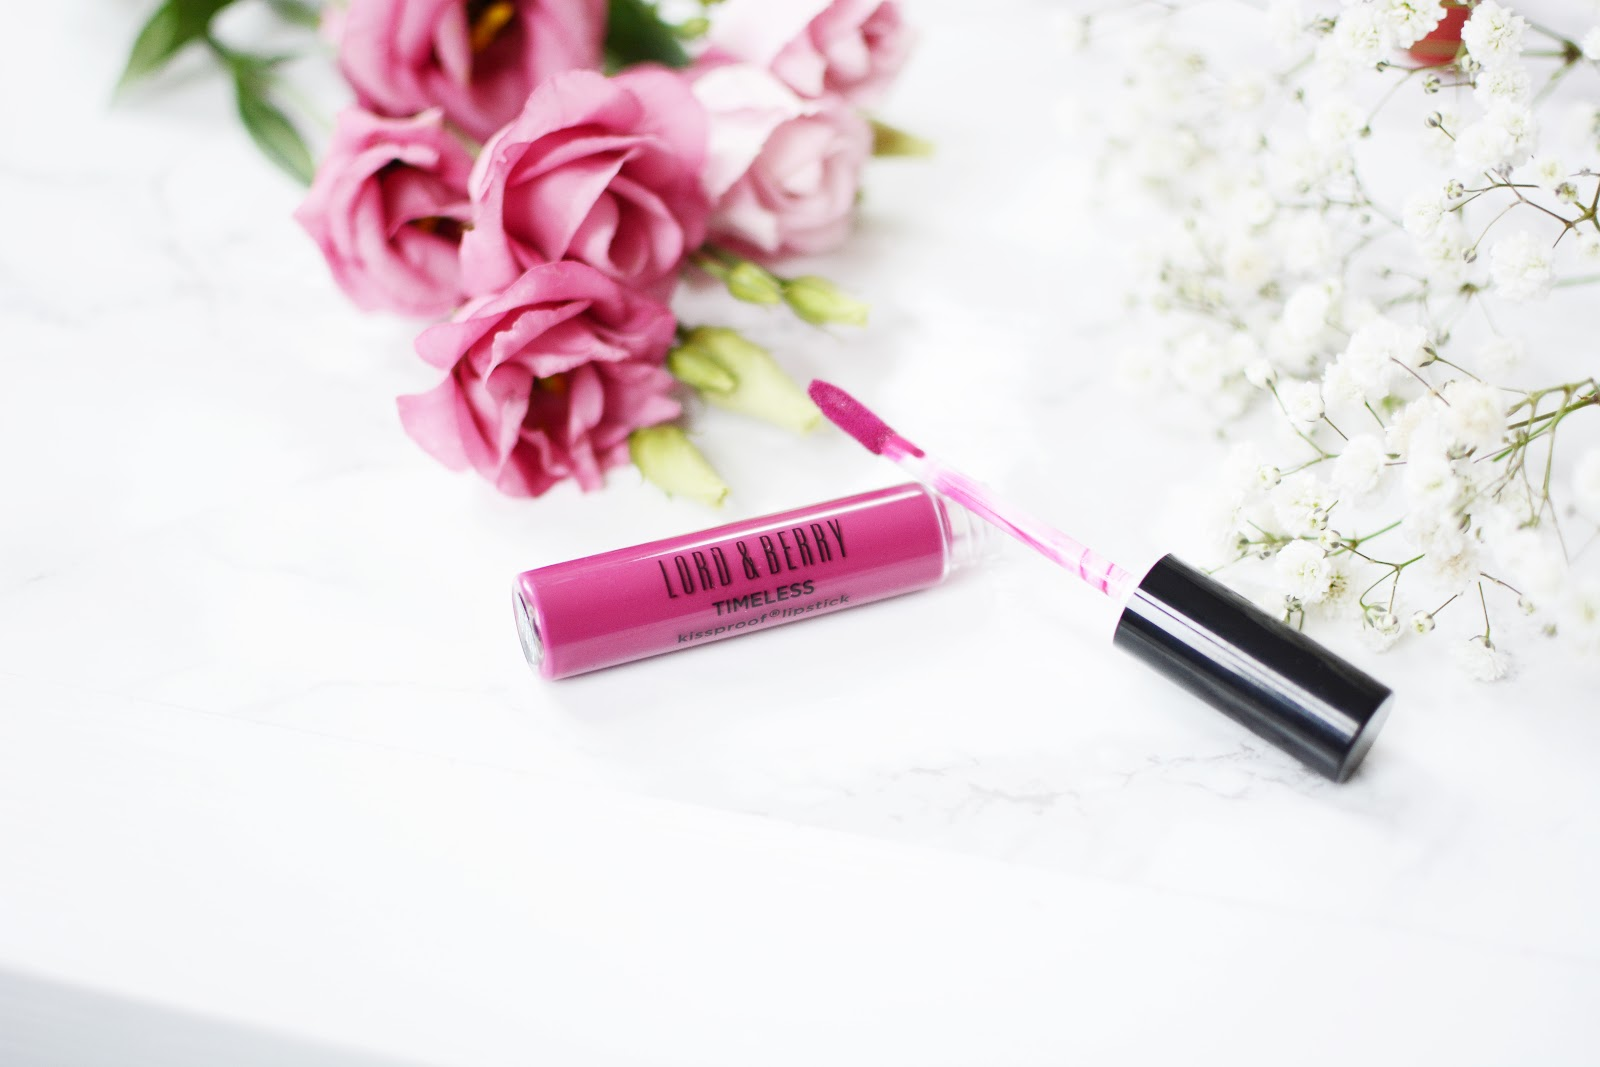 Lord & Berry Timeless Kissproof Lipstick POP PINK